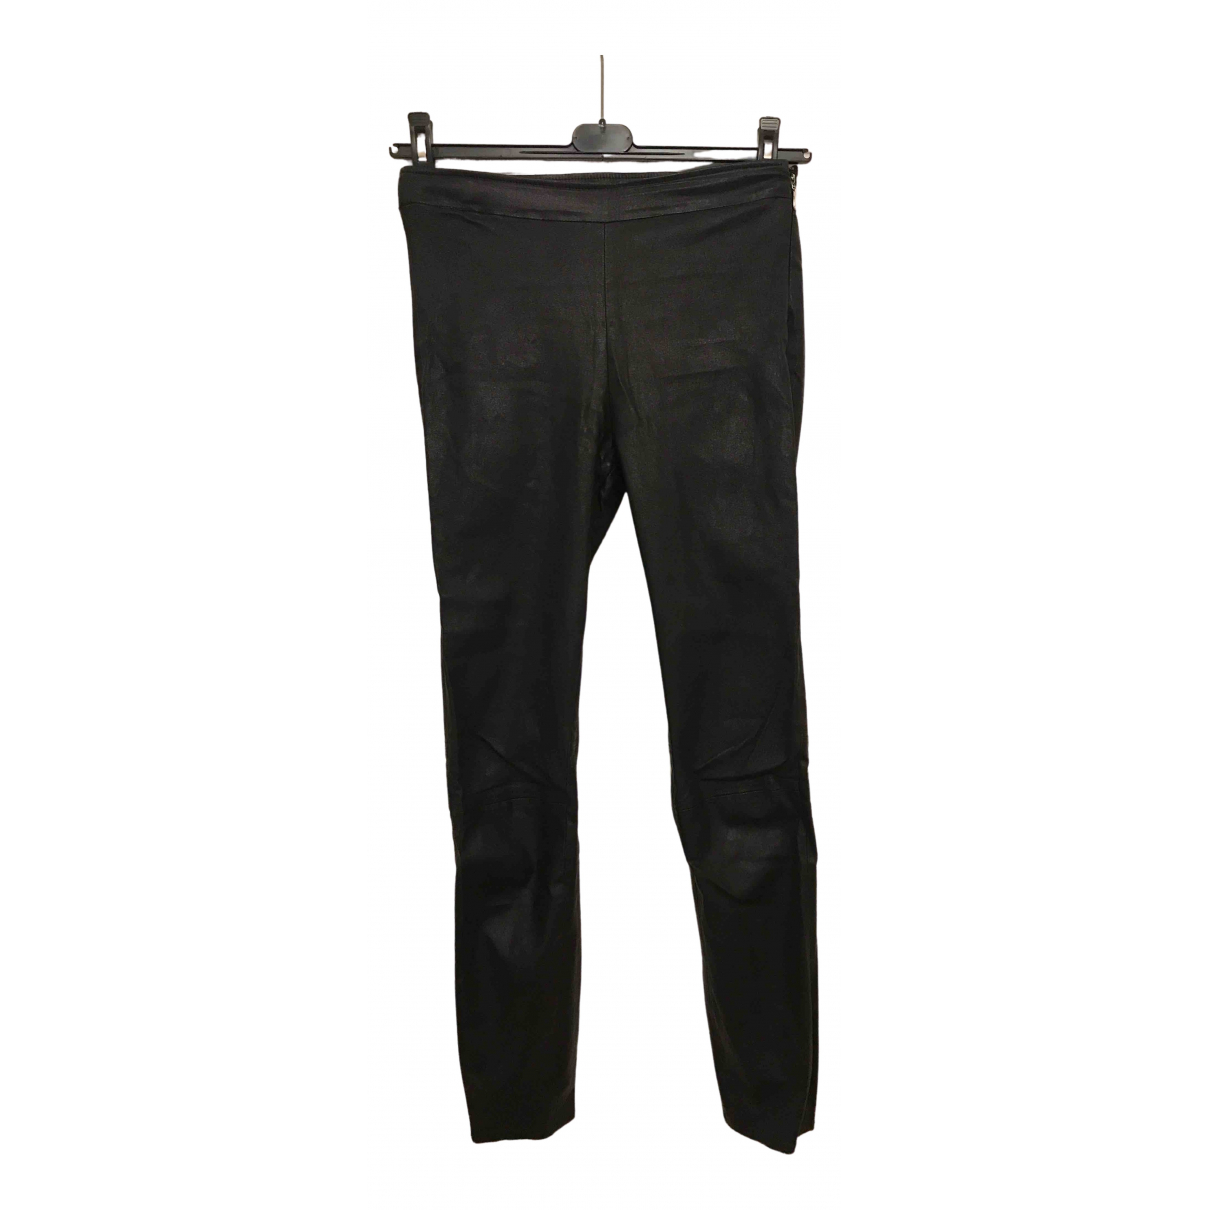 Massimo Dutti \N Black Leather Trousers for Women M International